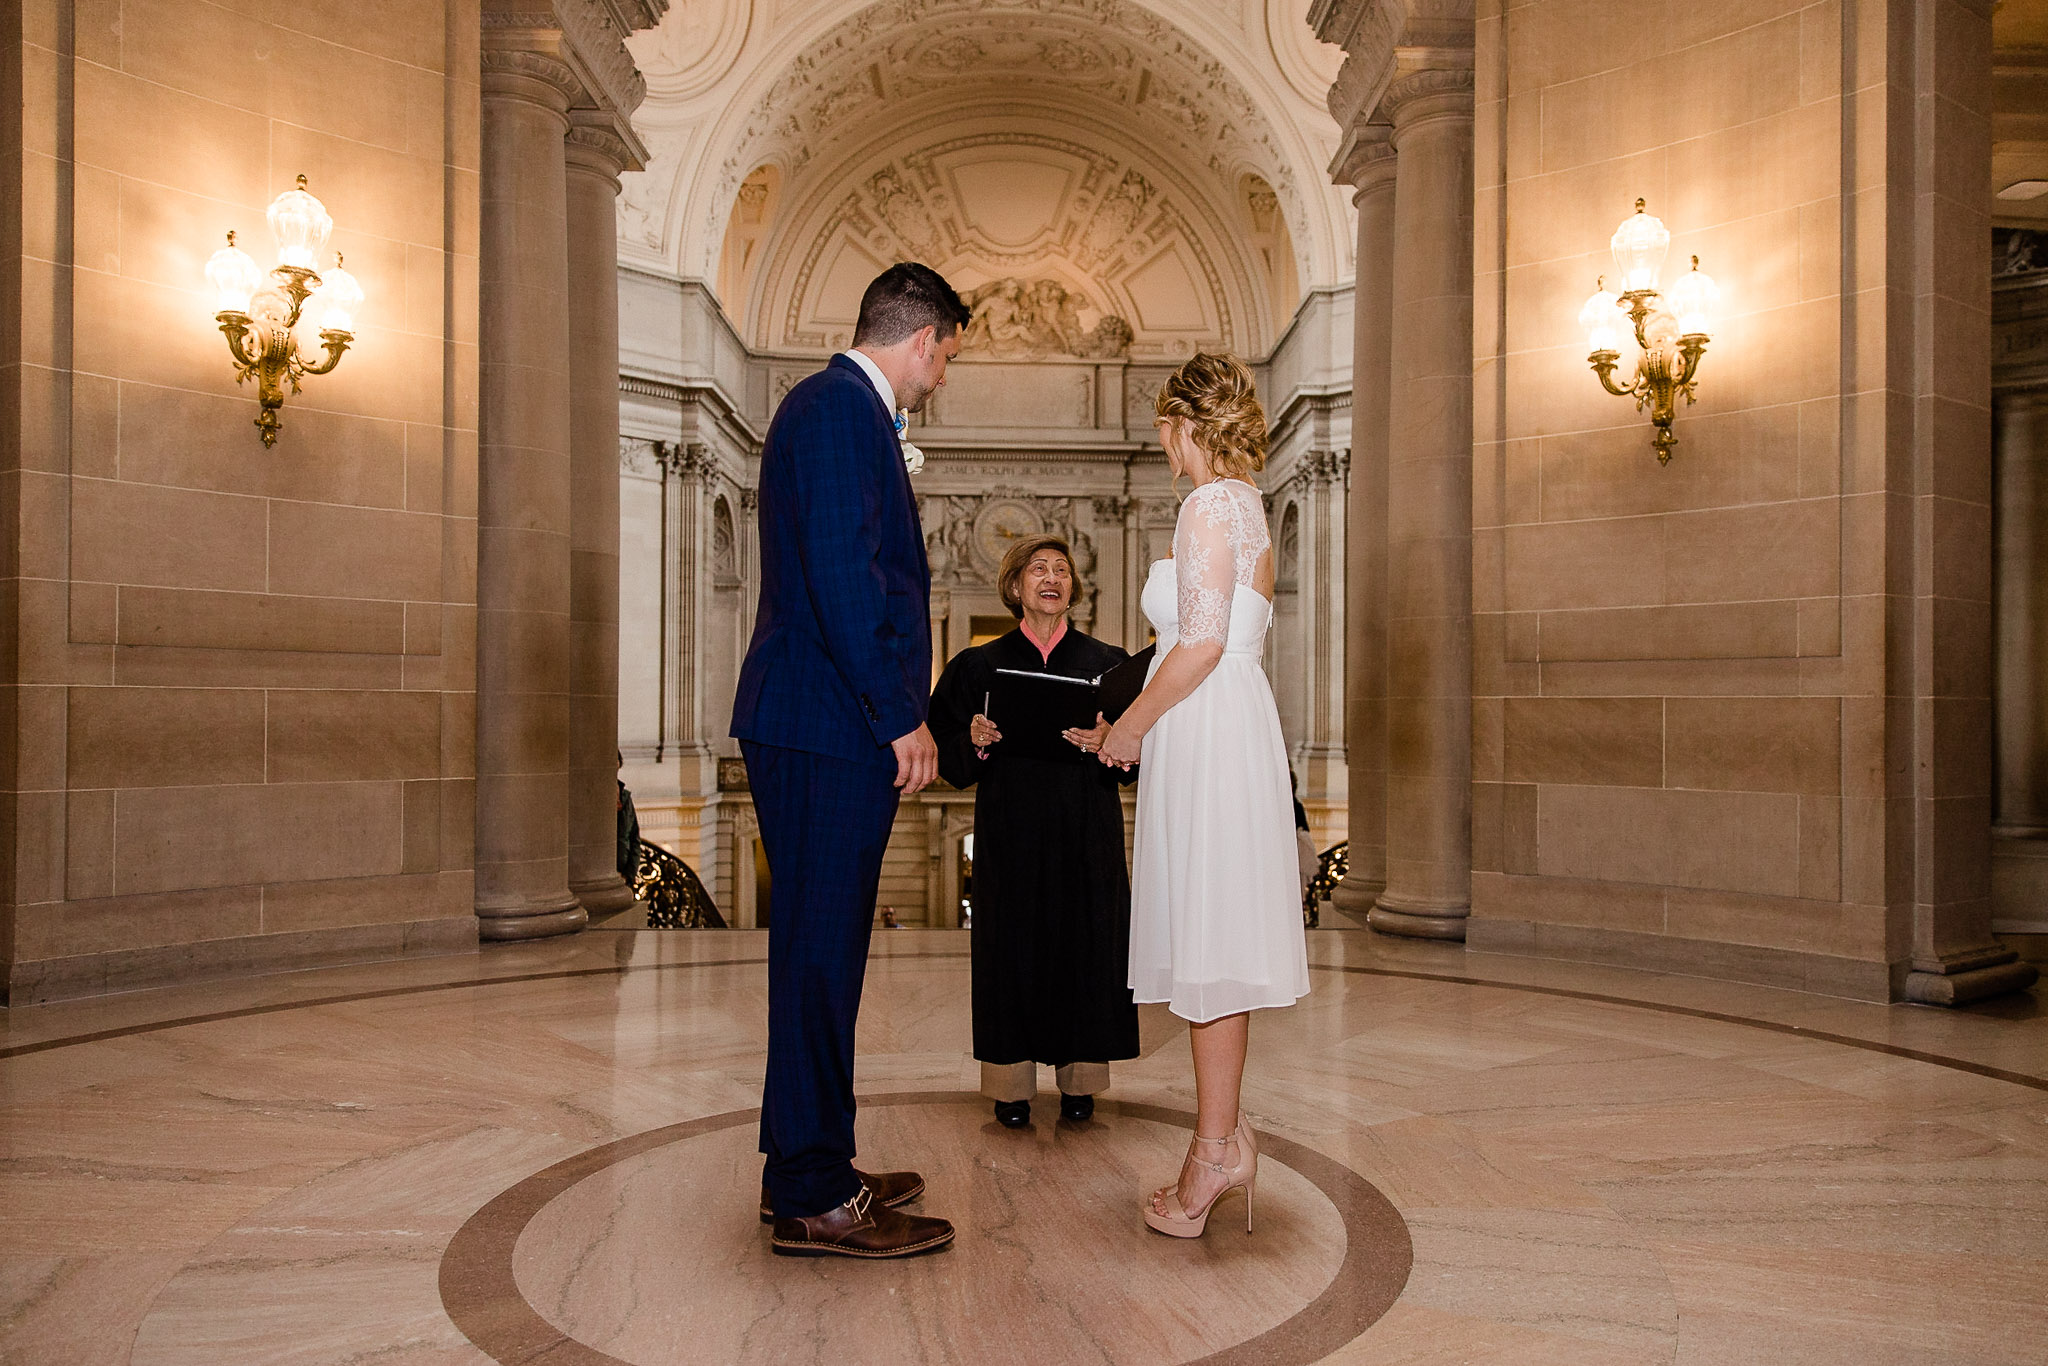 Bride and Groom during wedding ceremony at San Francisco City Hall